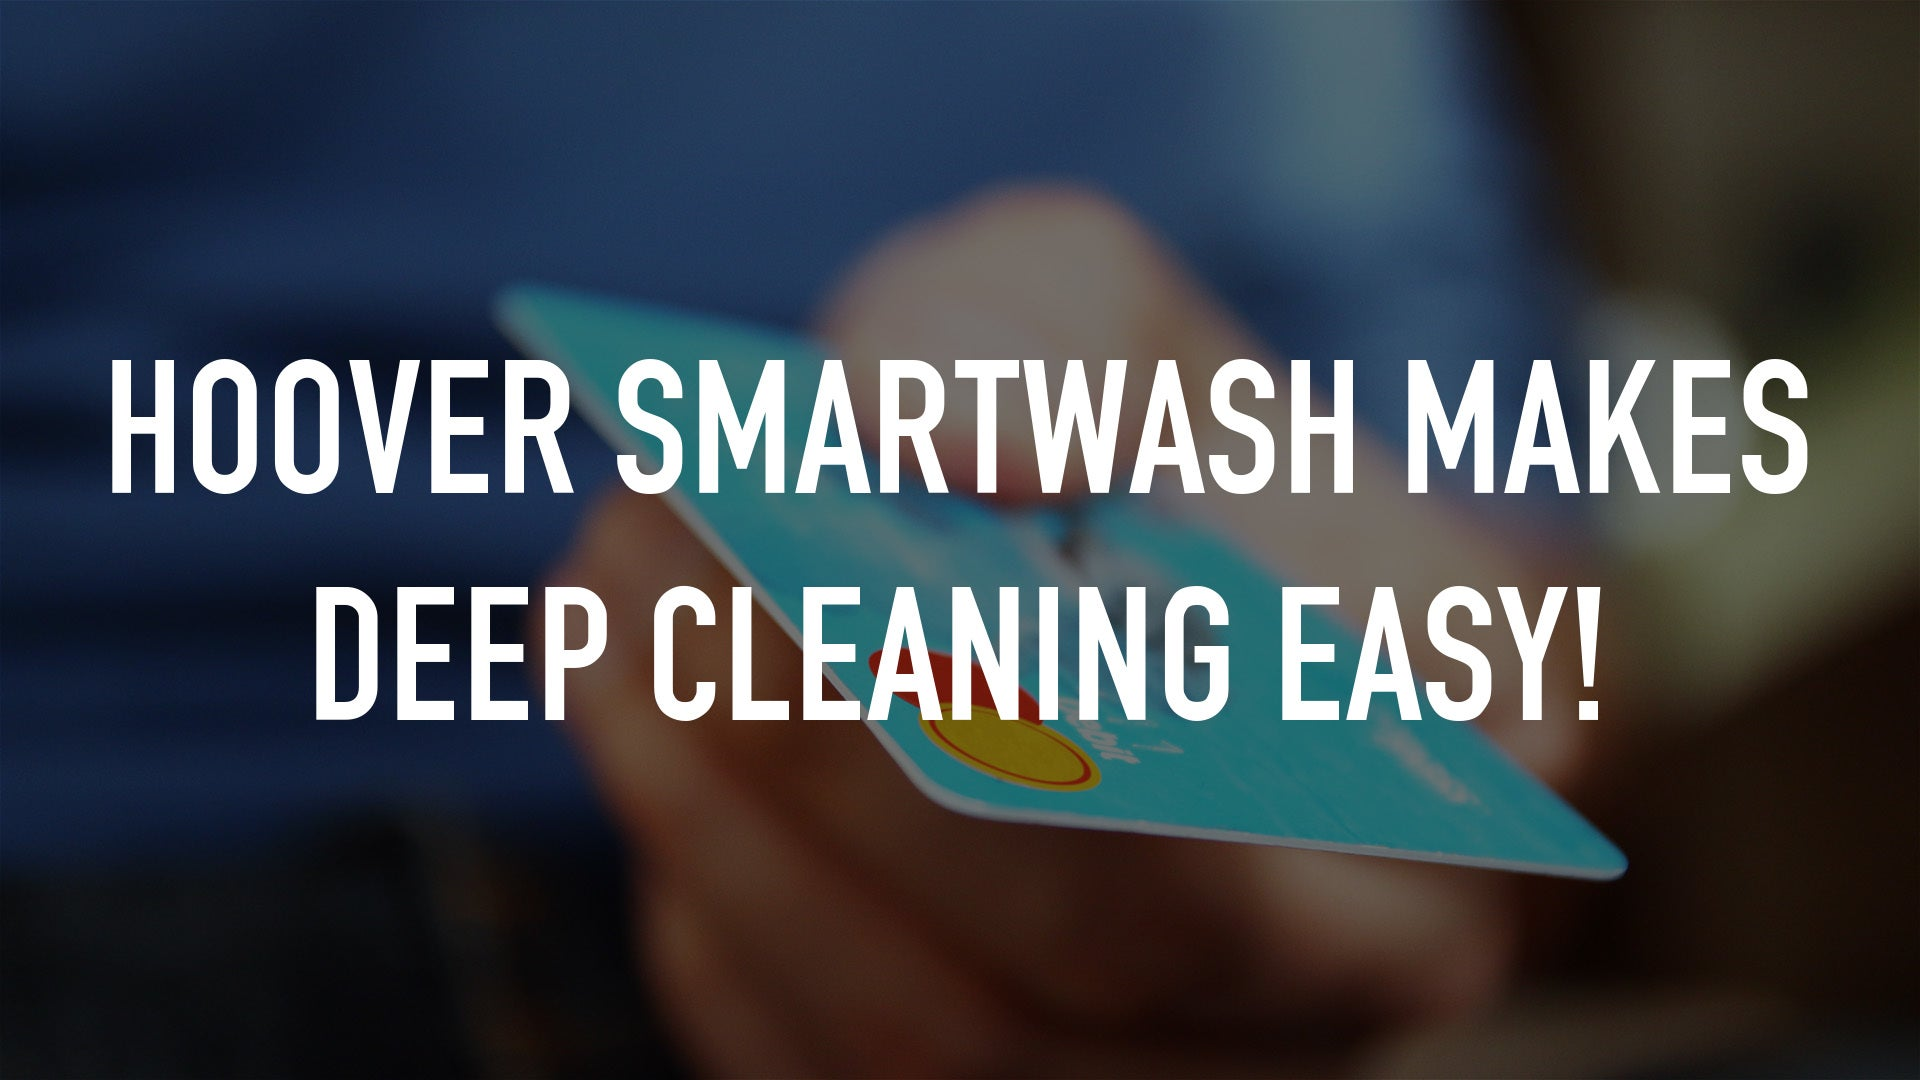 Hoover SmartWash Makes Deep Cleaning Easy!